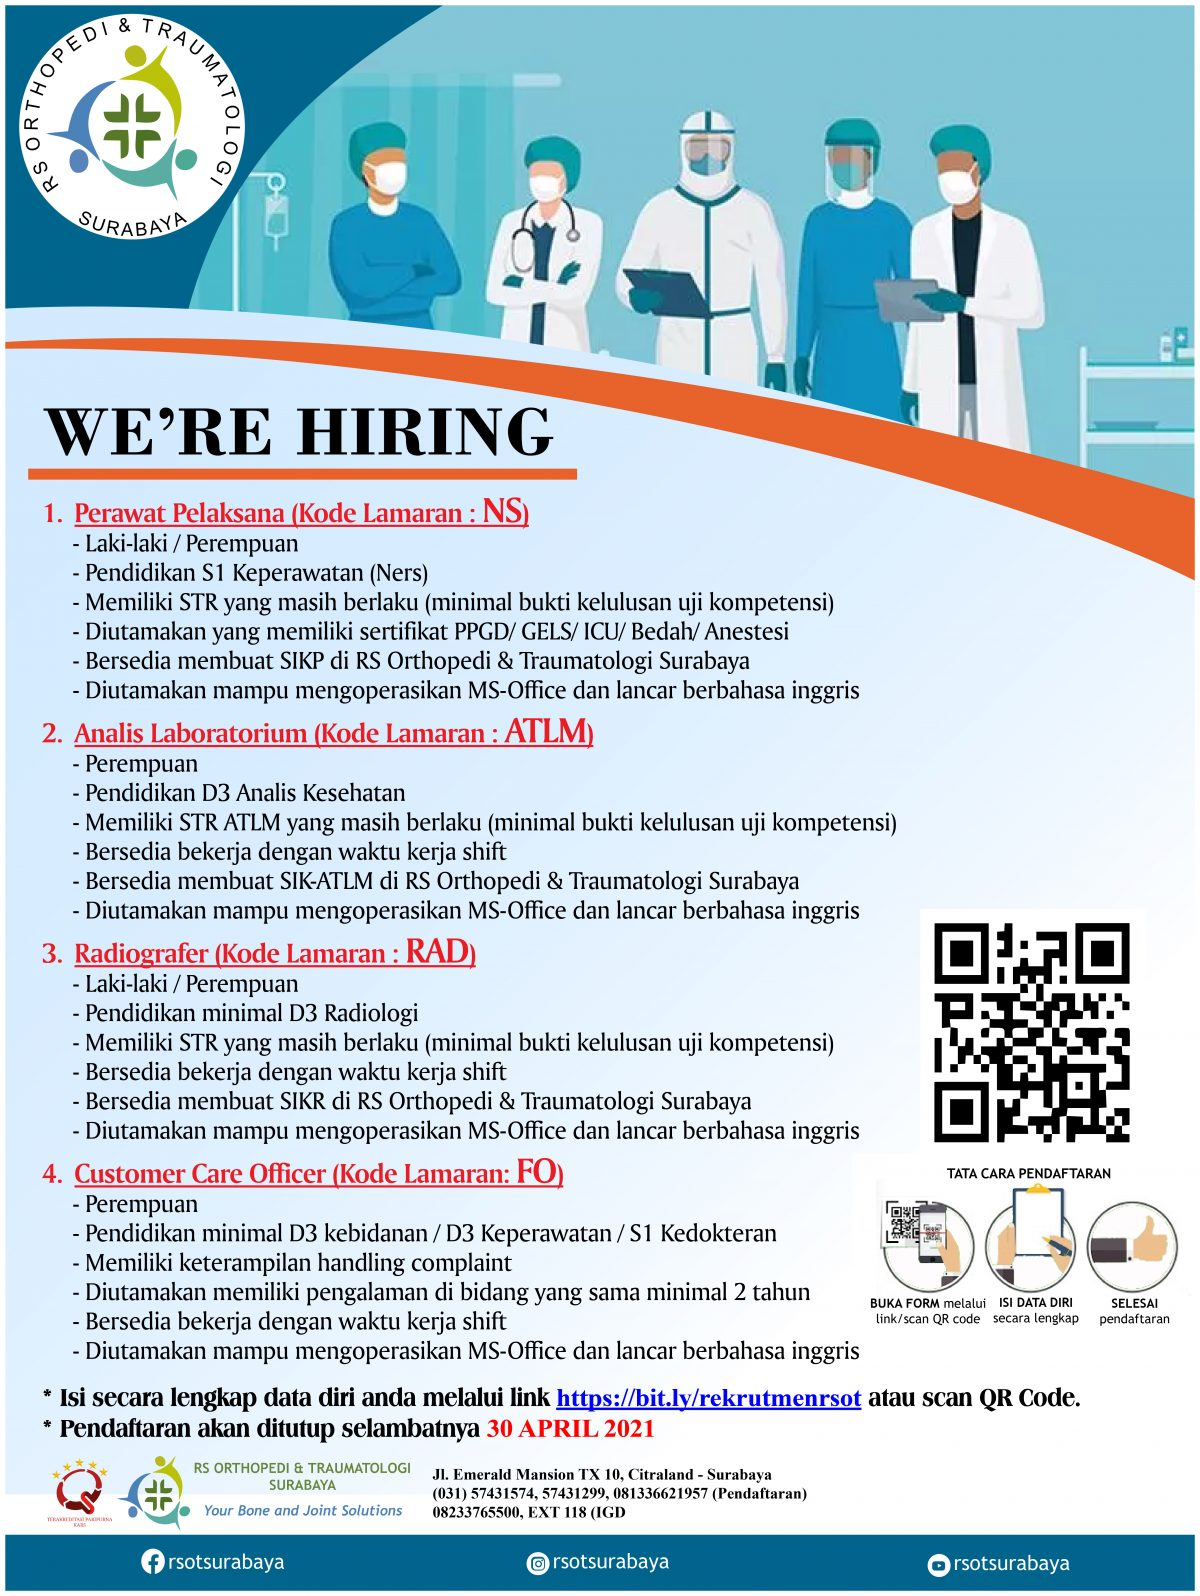 HIRING-ARTWORK-01-1-1200x1596.jpg